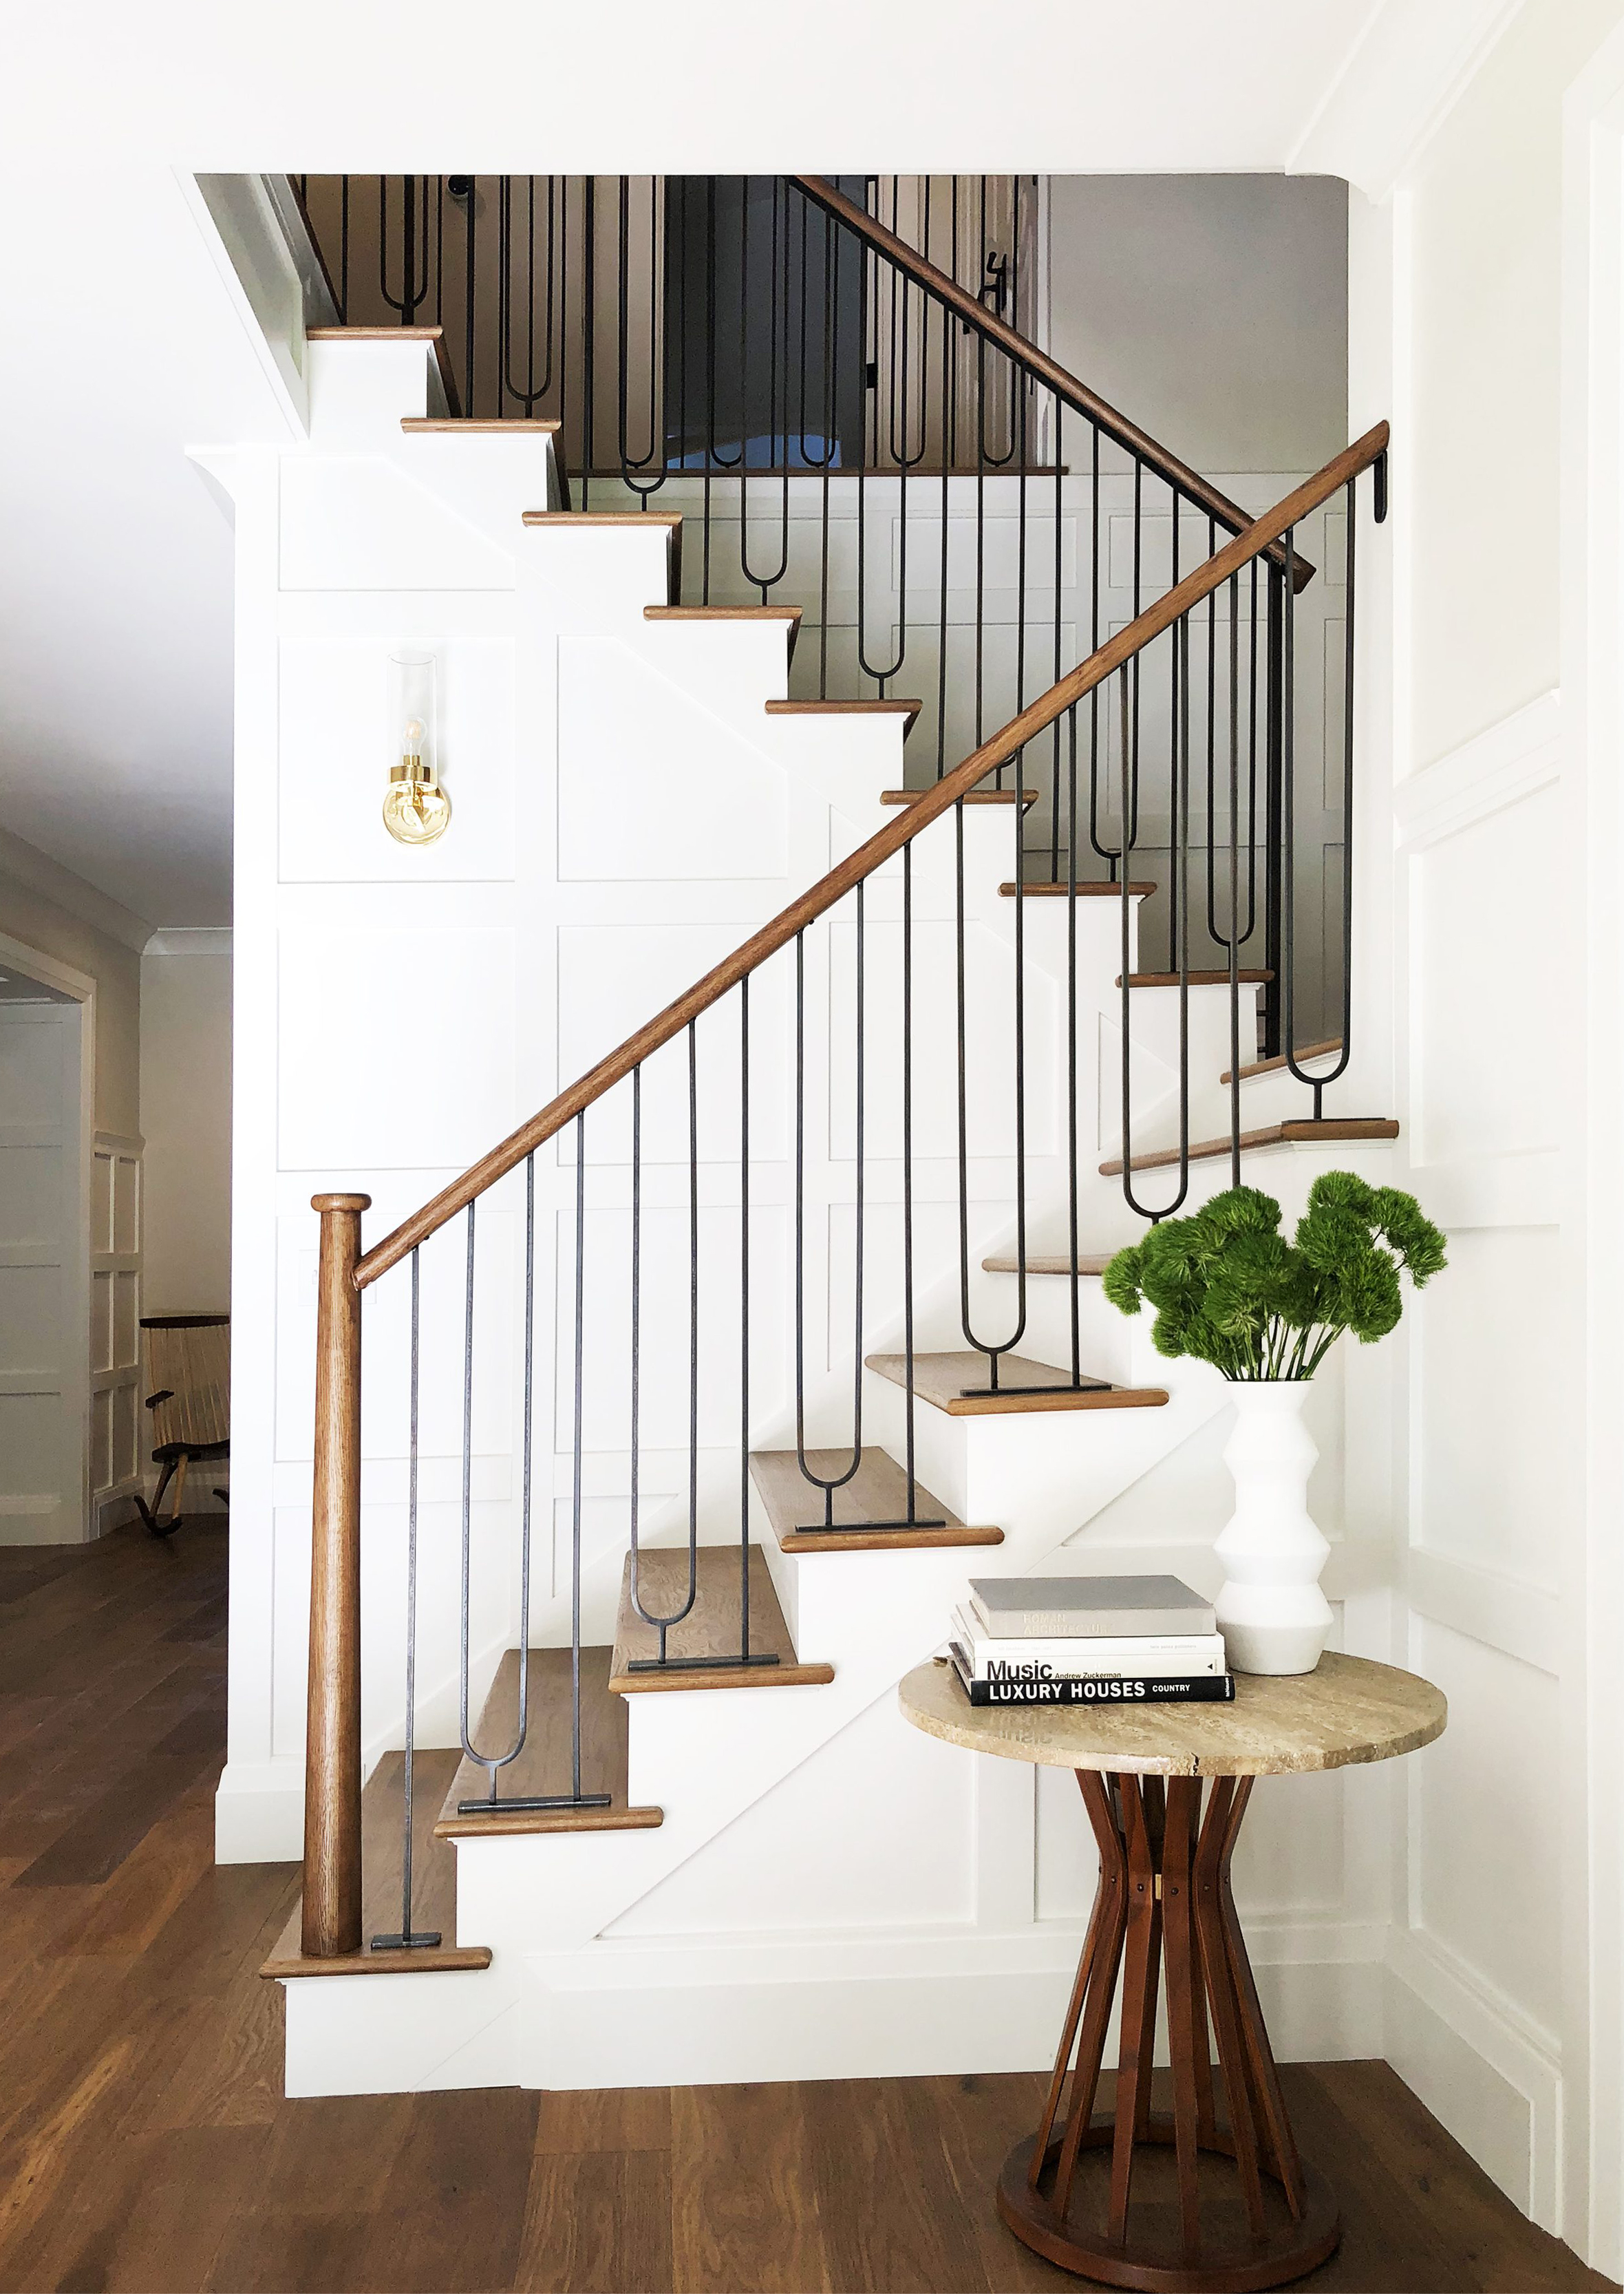 The Portland House Is For Sale Listing Sneak Peaks Party Details Metal Stair Railing Interior Stairs Modern Stair Railing